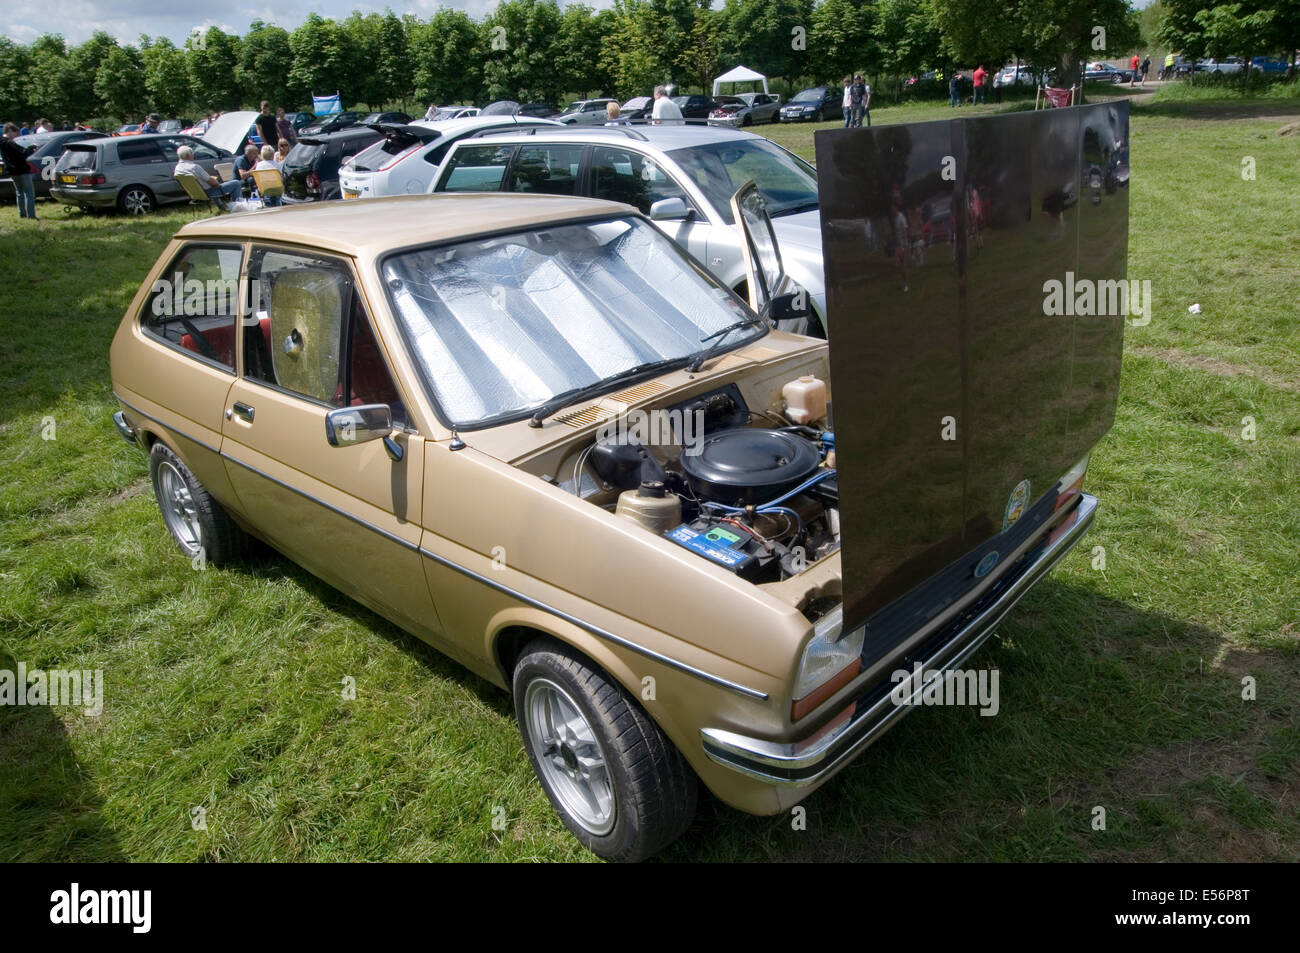 Small Car Ford Stock Photos & Small Car Ford Stock Images - Alamy